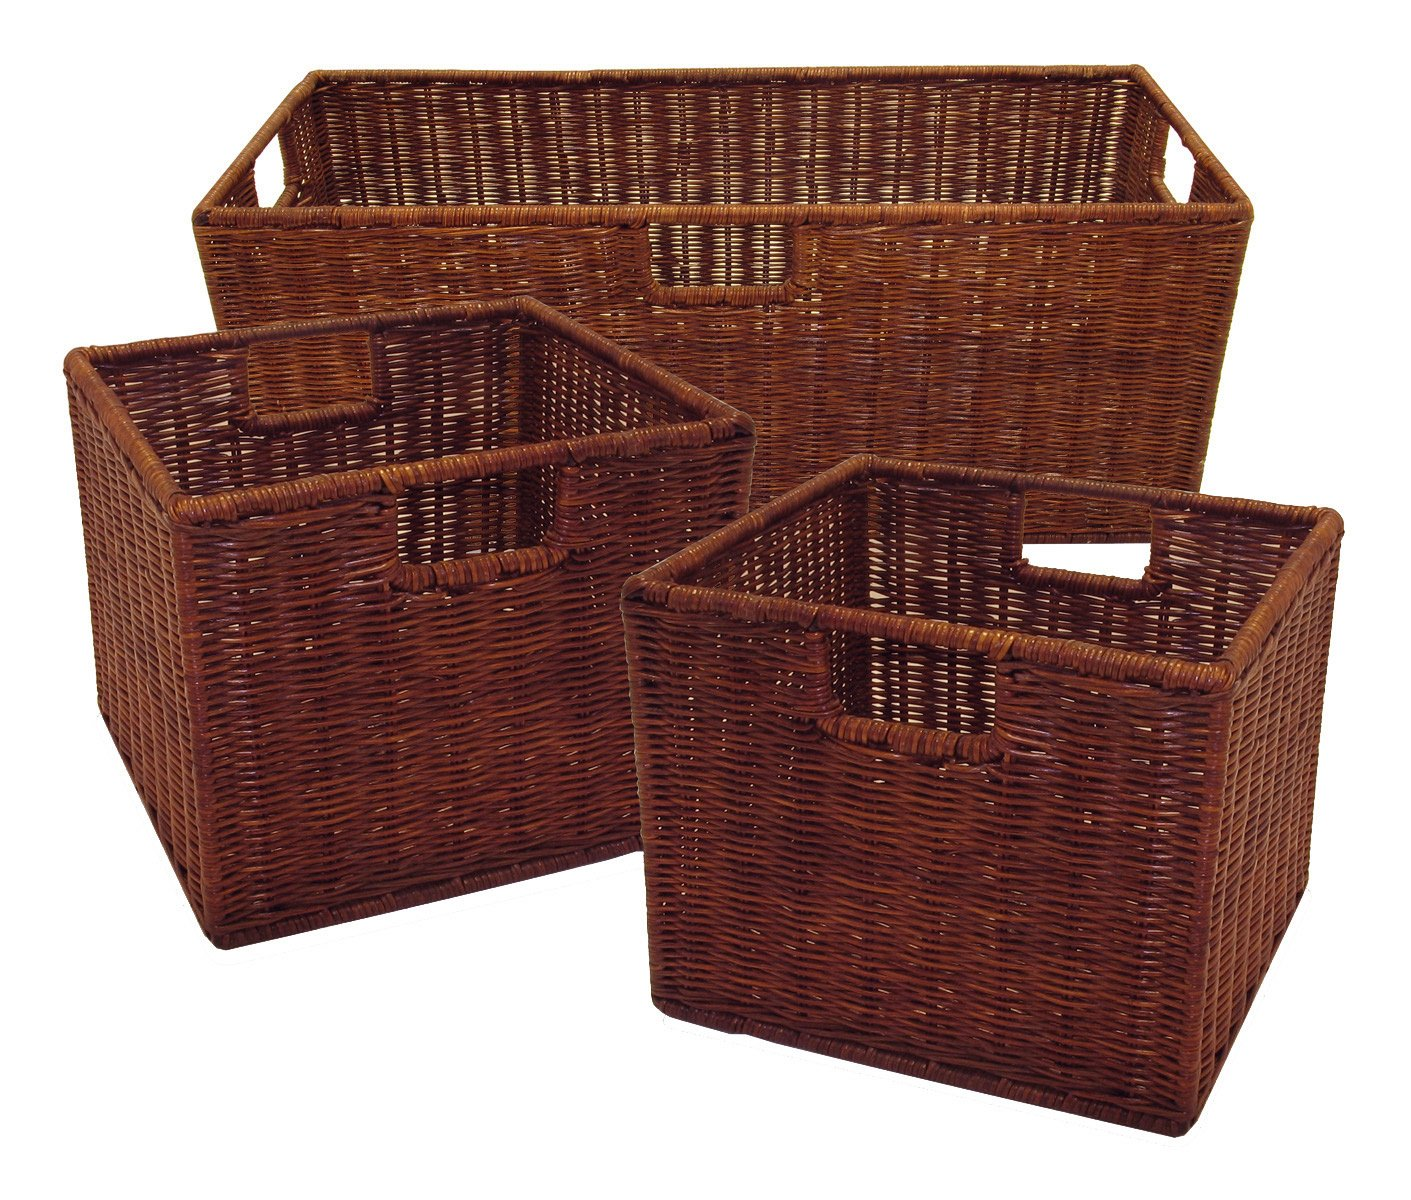 Amazon.com: Winsome Wood Leo Storage Baskets, Set of 3, Walnut: Home &  Kitchen